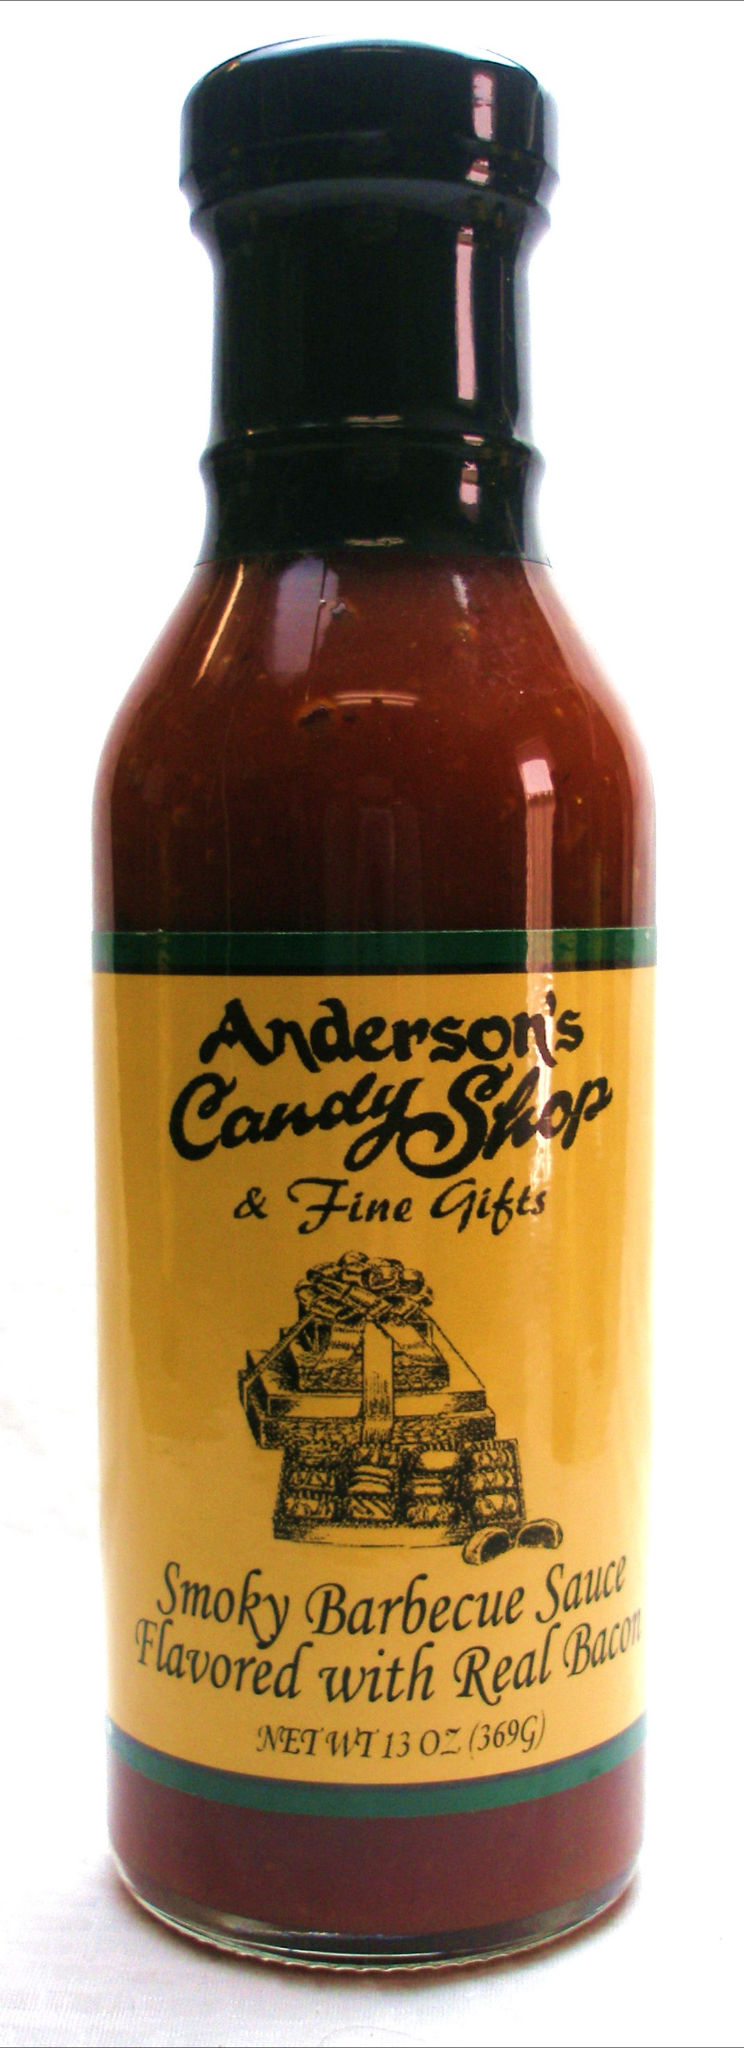 Smoky Barbecue Sauce Flavored with Real Bacon, Anderson's Candy Shop ...